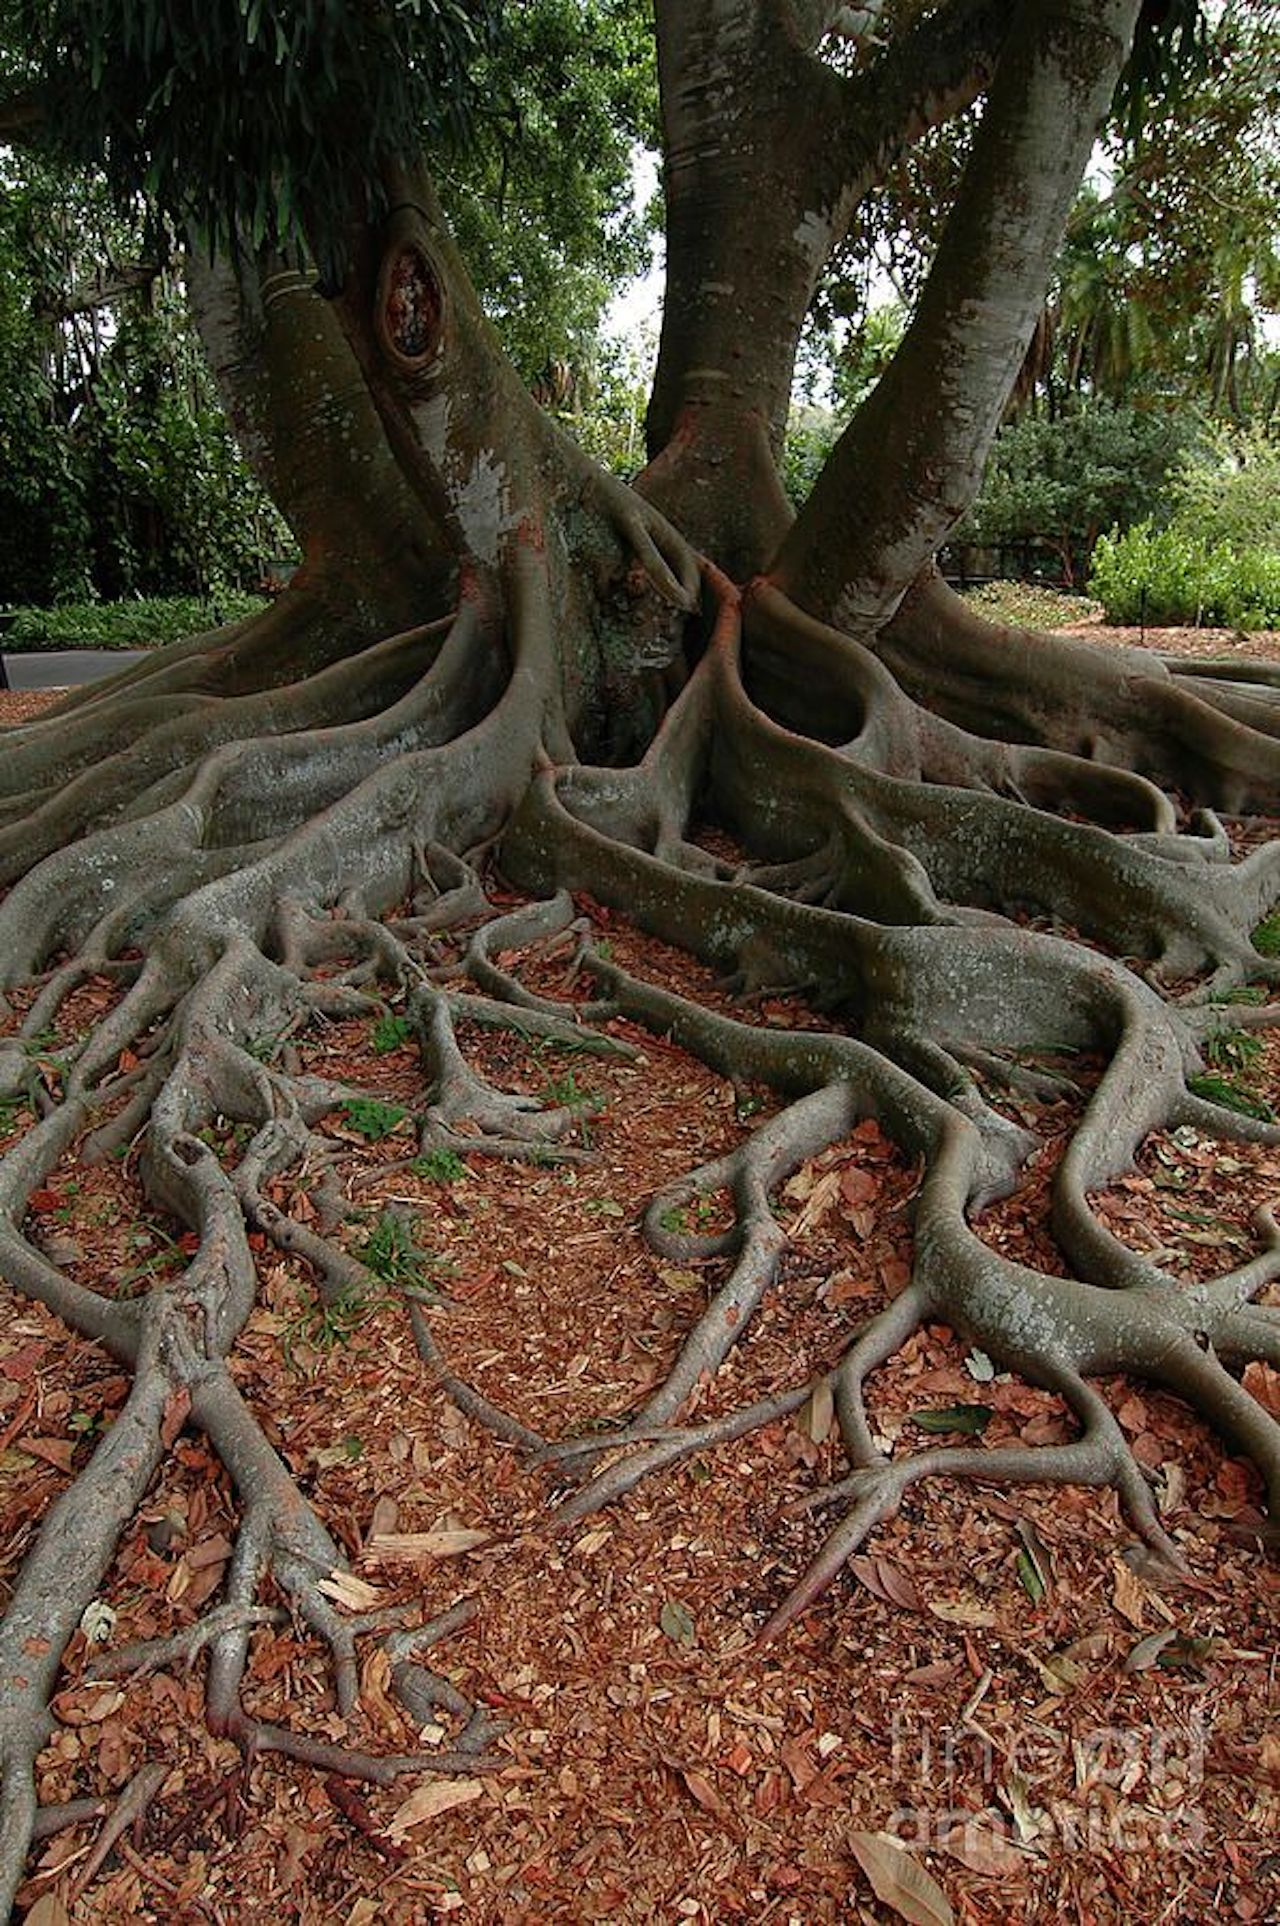 A banyan tree with aerial prop roots that mature into thick, woody trunks, which can become indistinguishable from the primary trunk with age